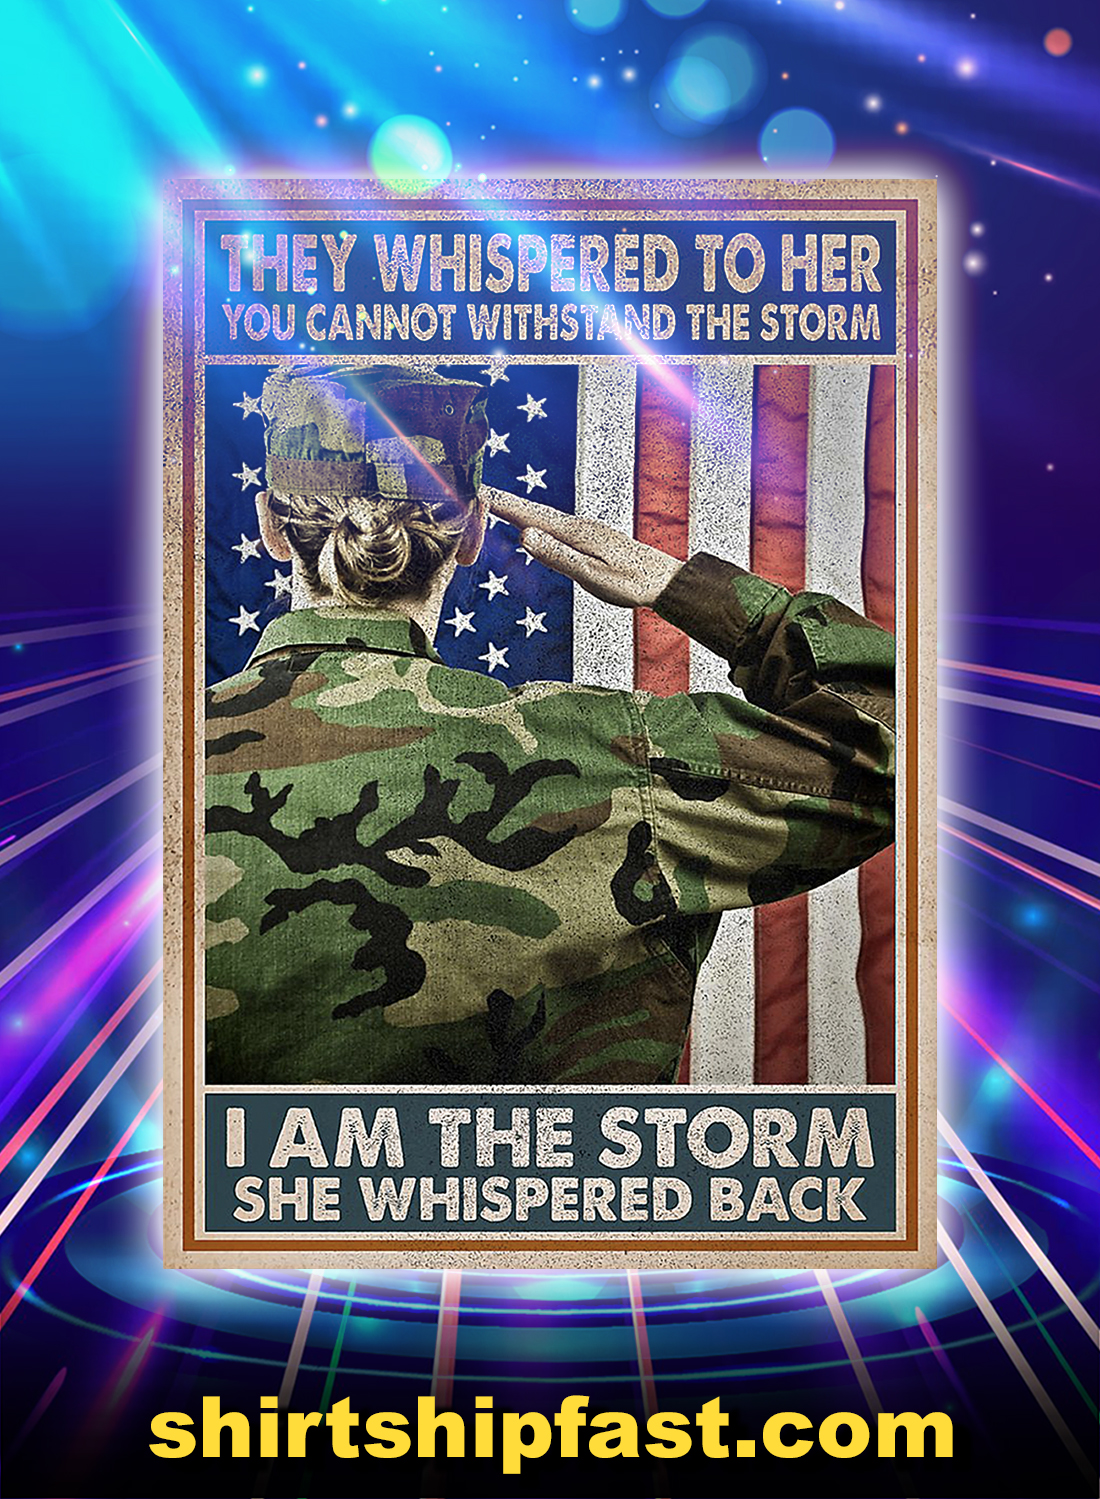 Female soldier they whispered to her you cannot withstand the storm poster - A4